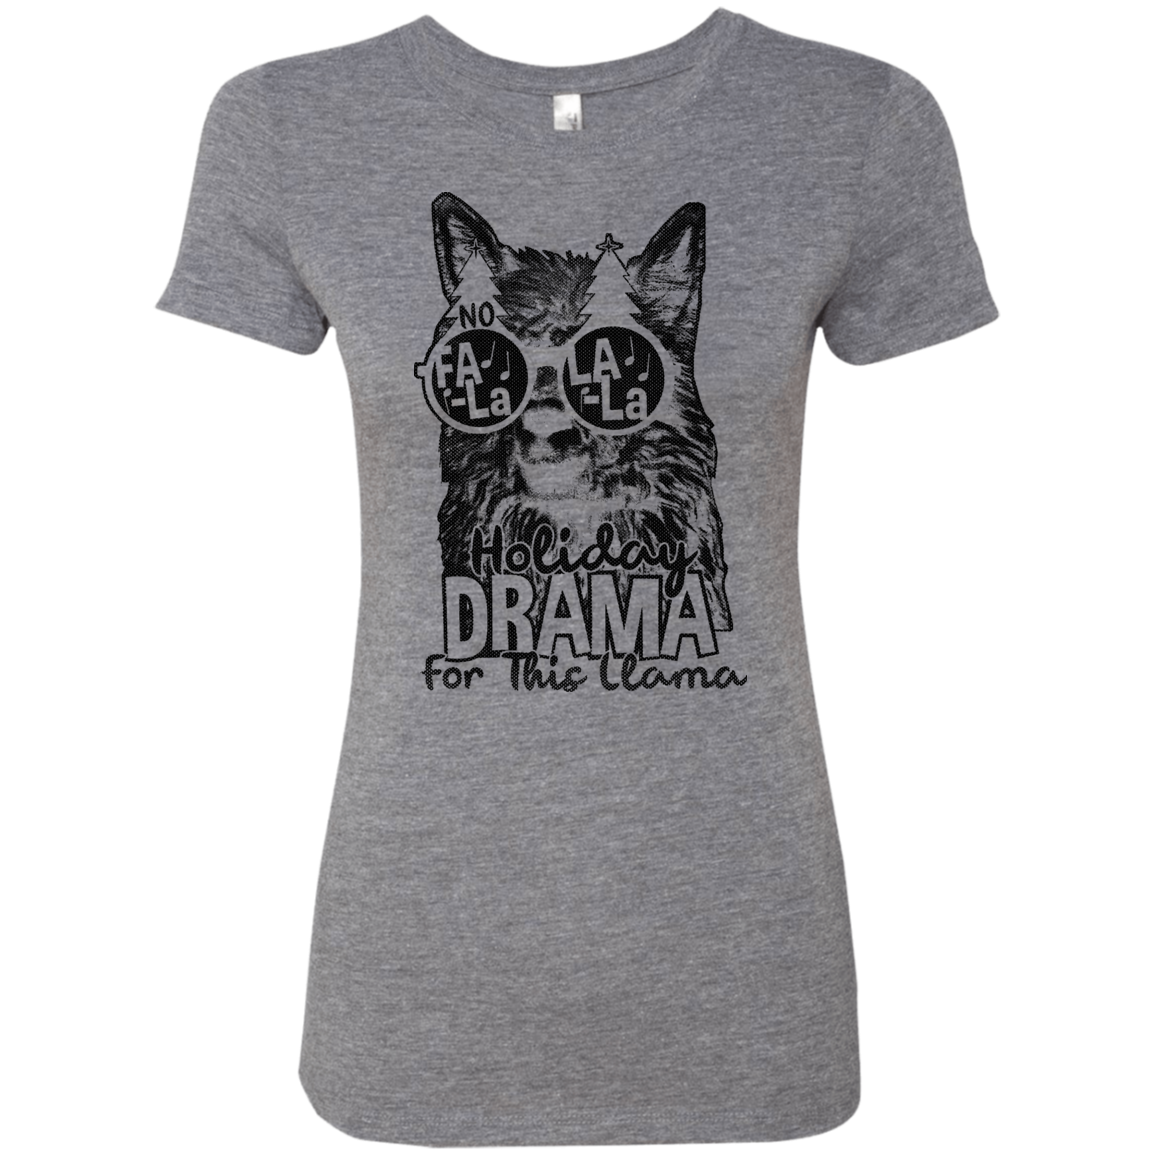 Holiday Drama For This Llama Women's Classic Tee